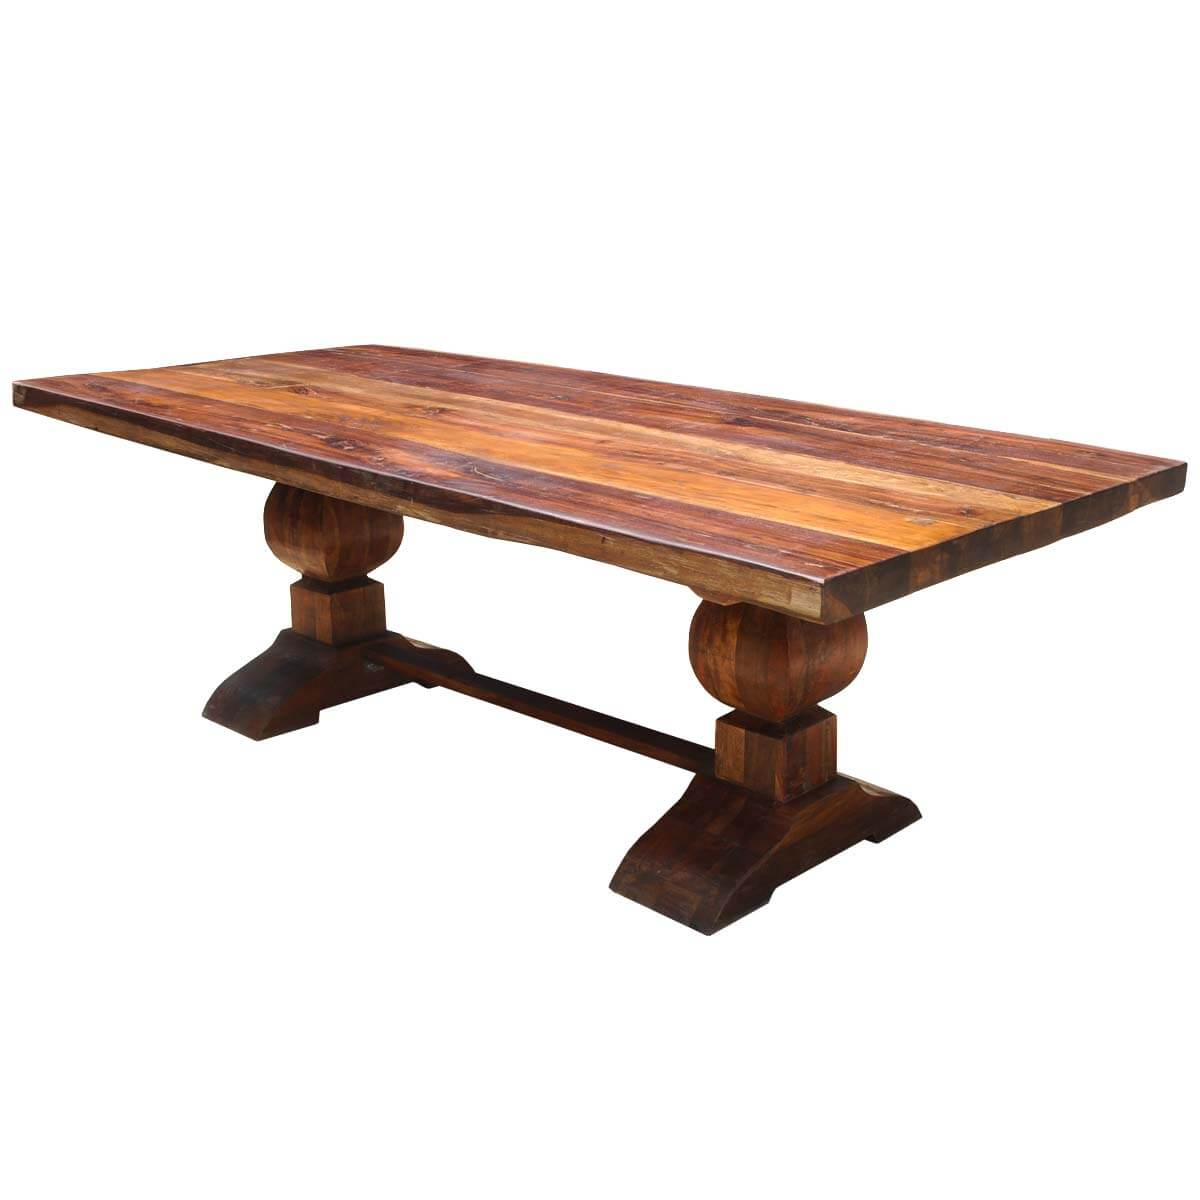 Large rustic reclaimed wood double trestle pedestal dining room table Trestle dining table